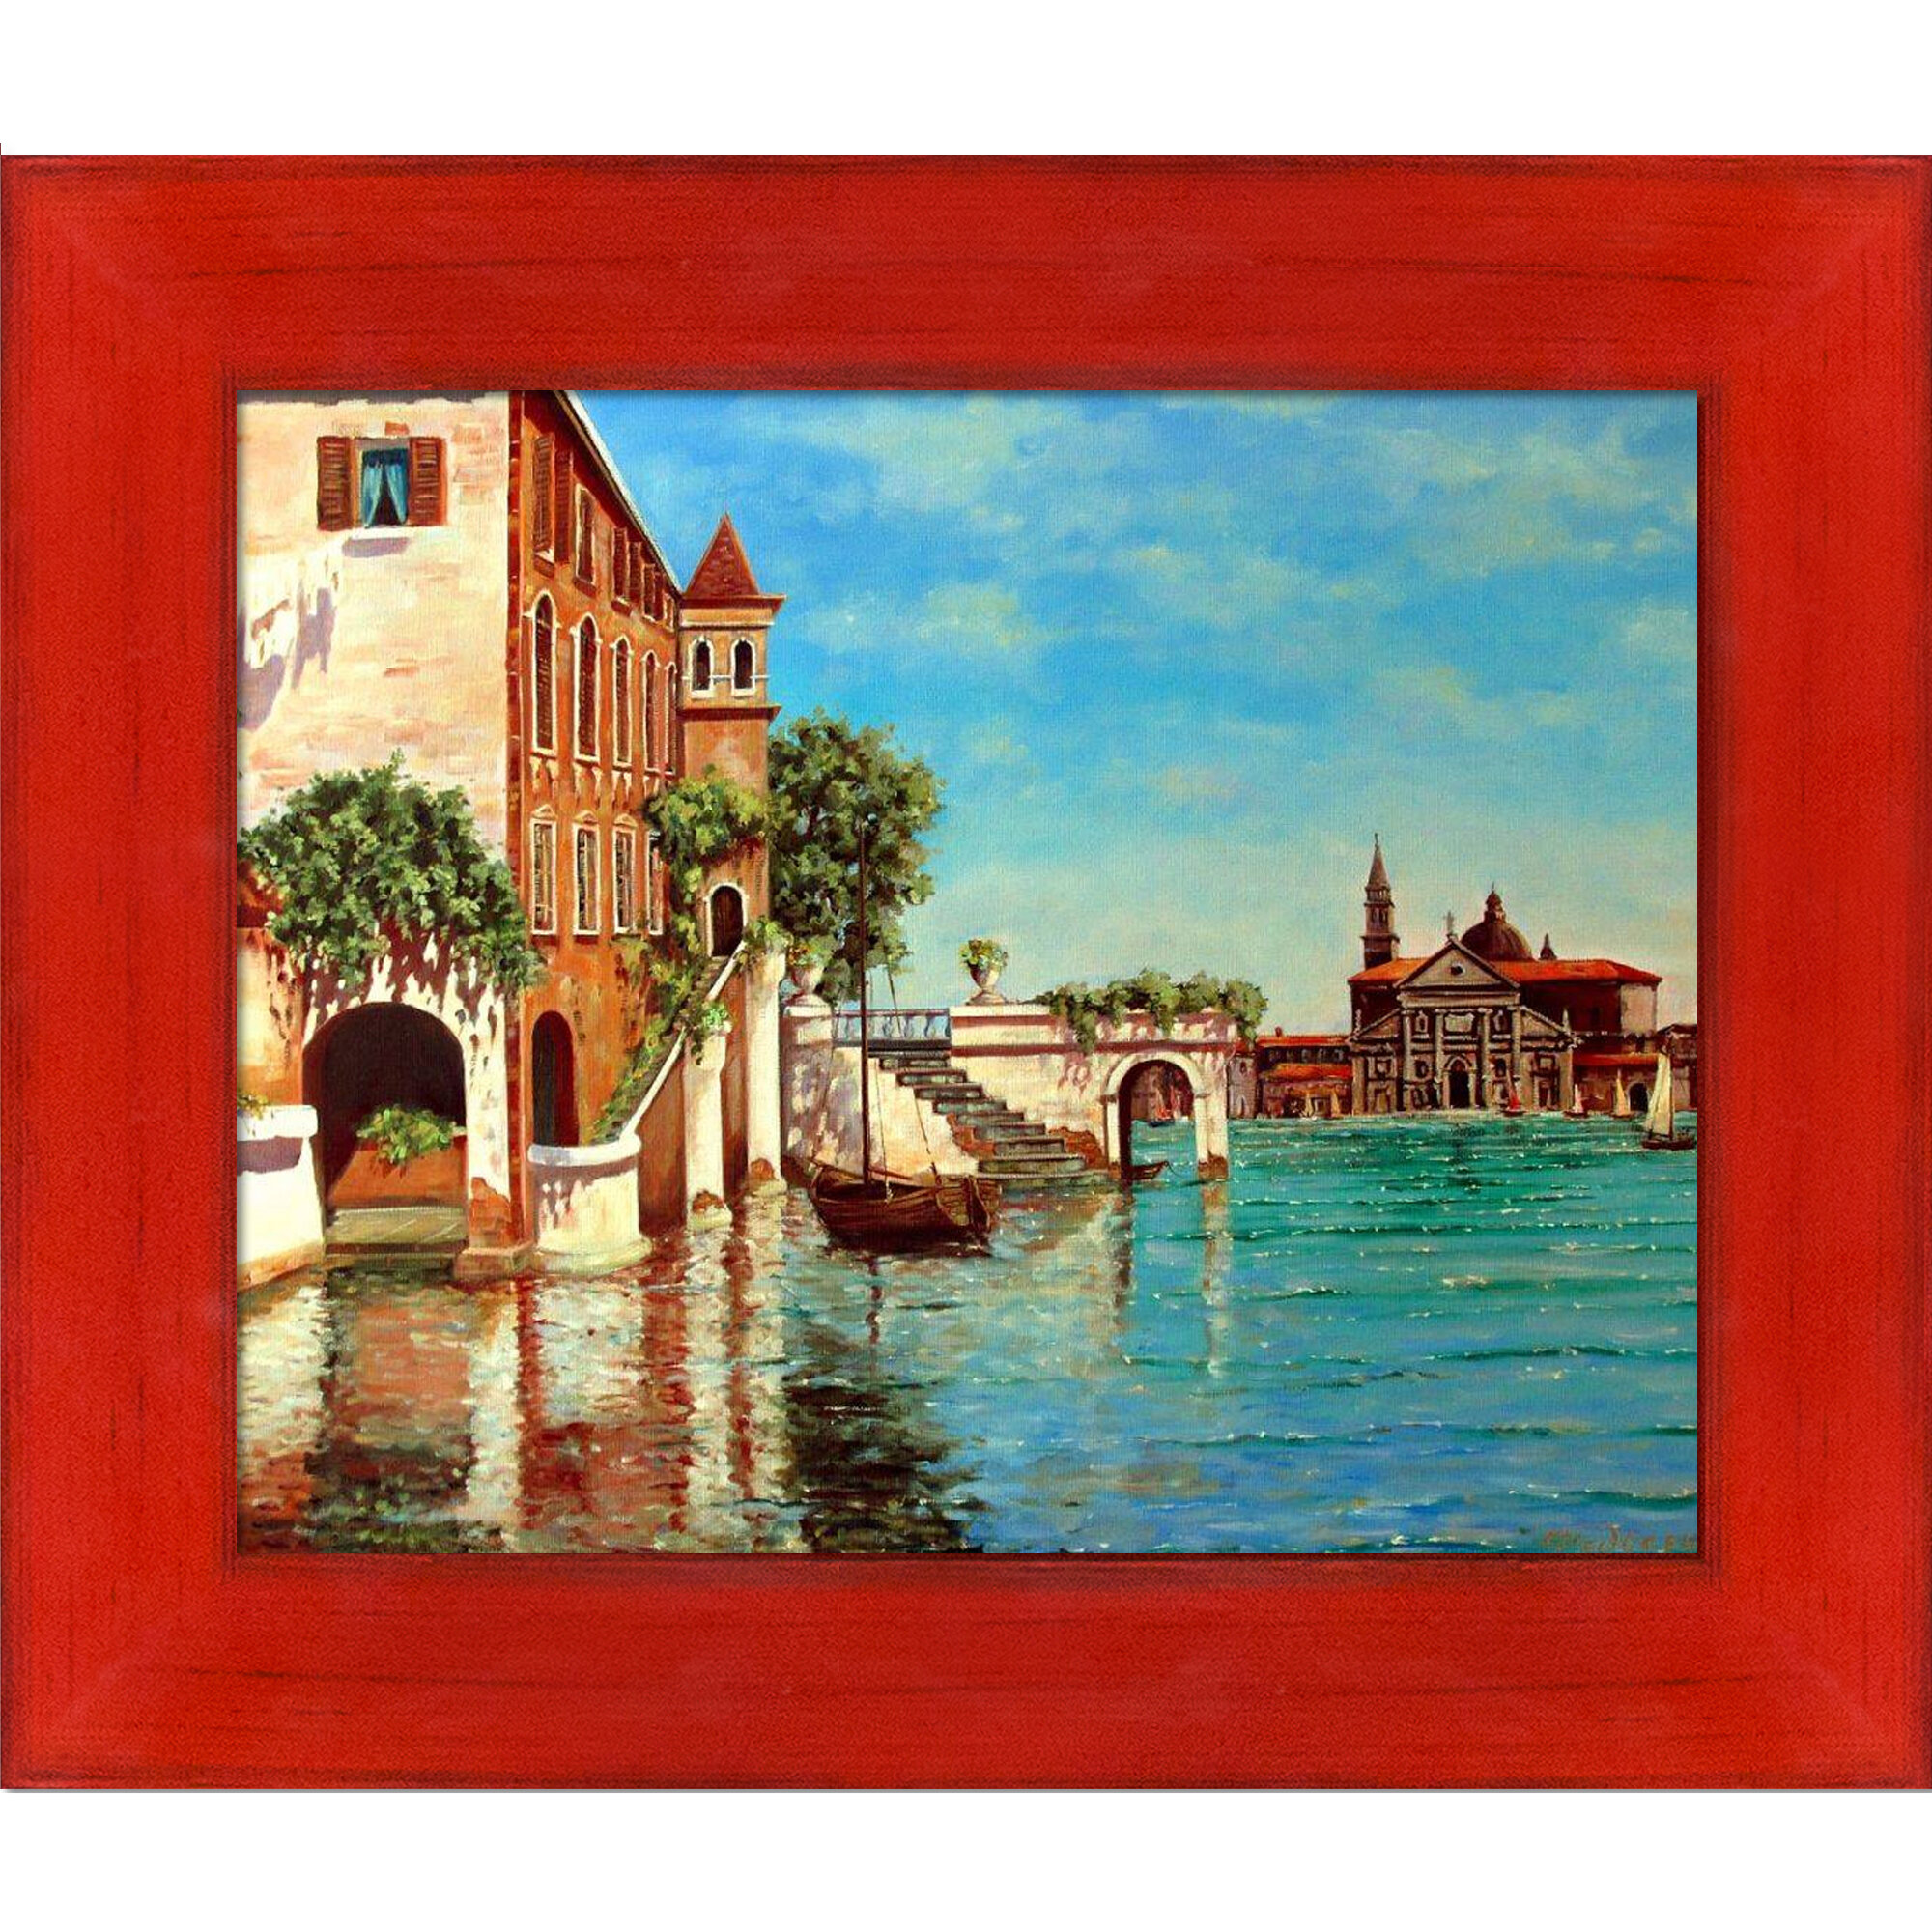 Mini Venice Framed Art You Ll Love In 2021 Wayfair